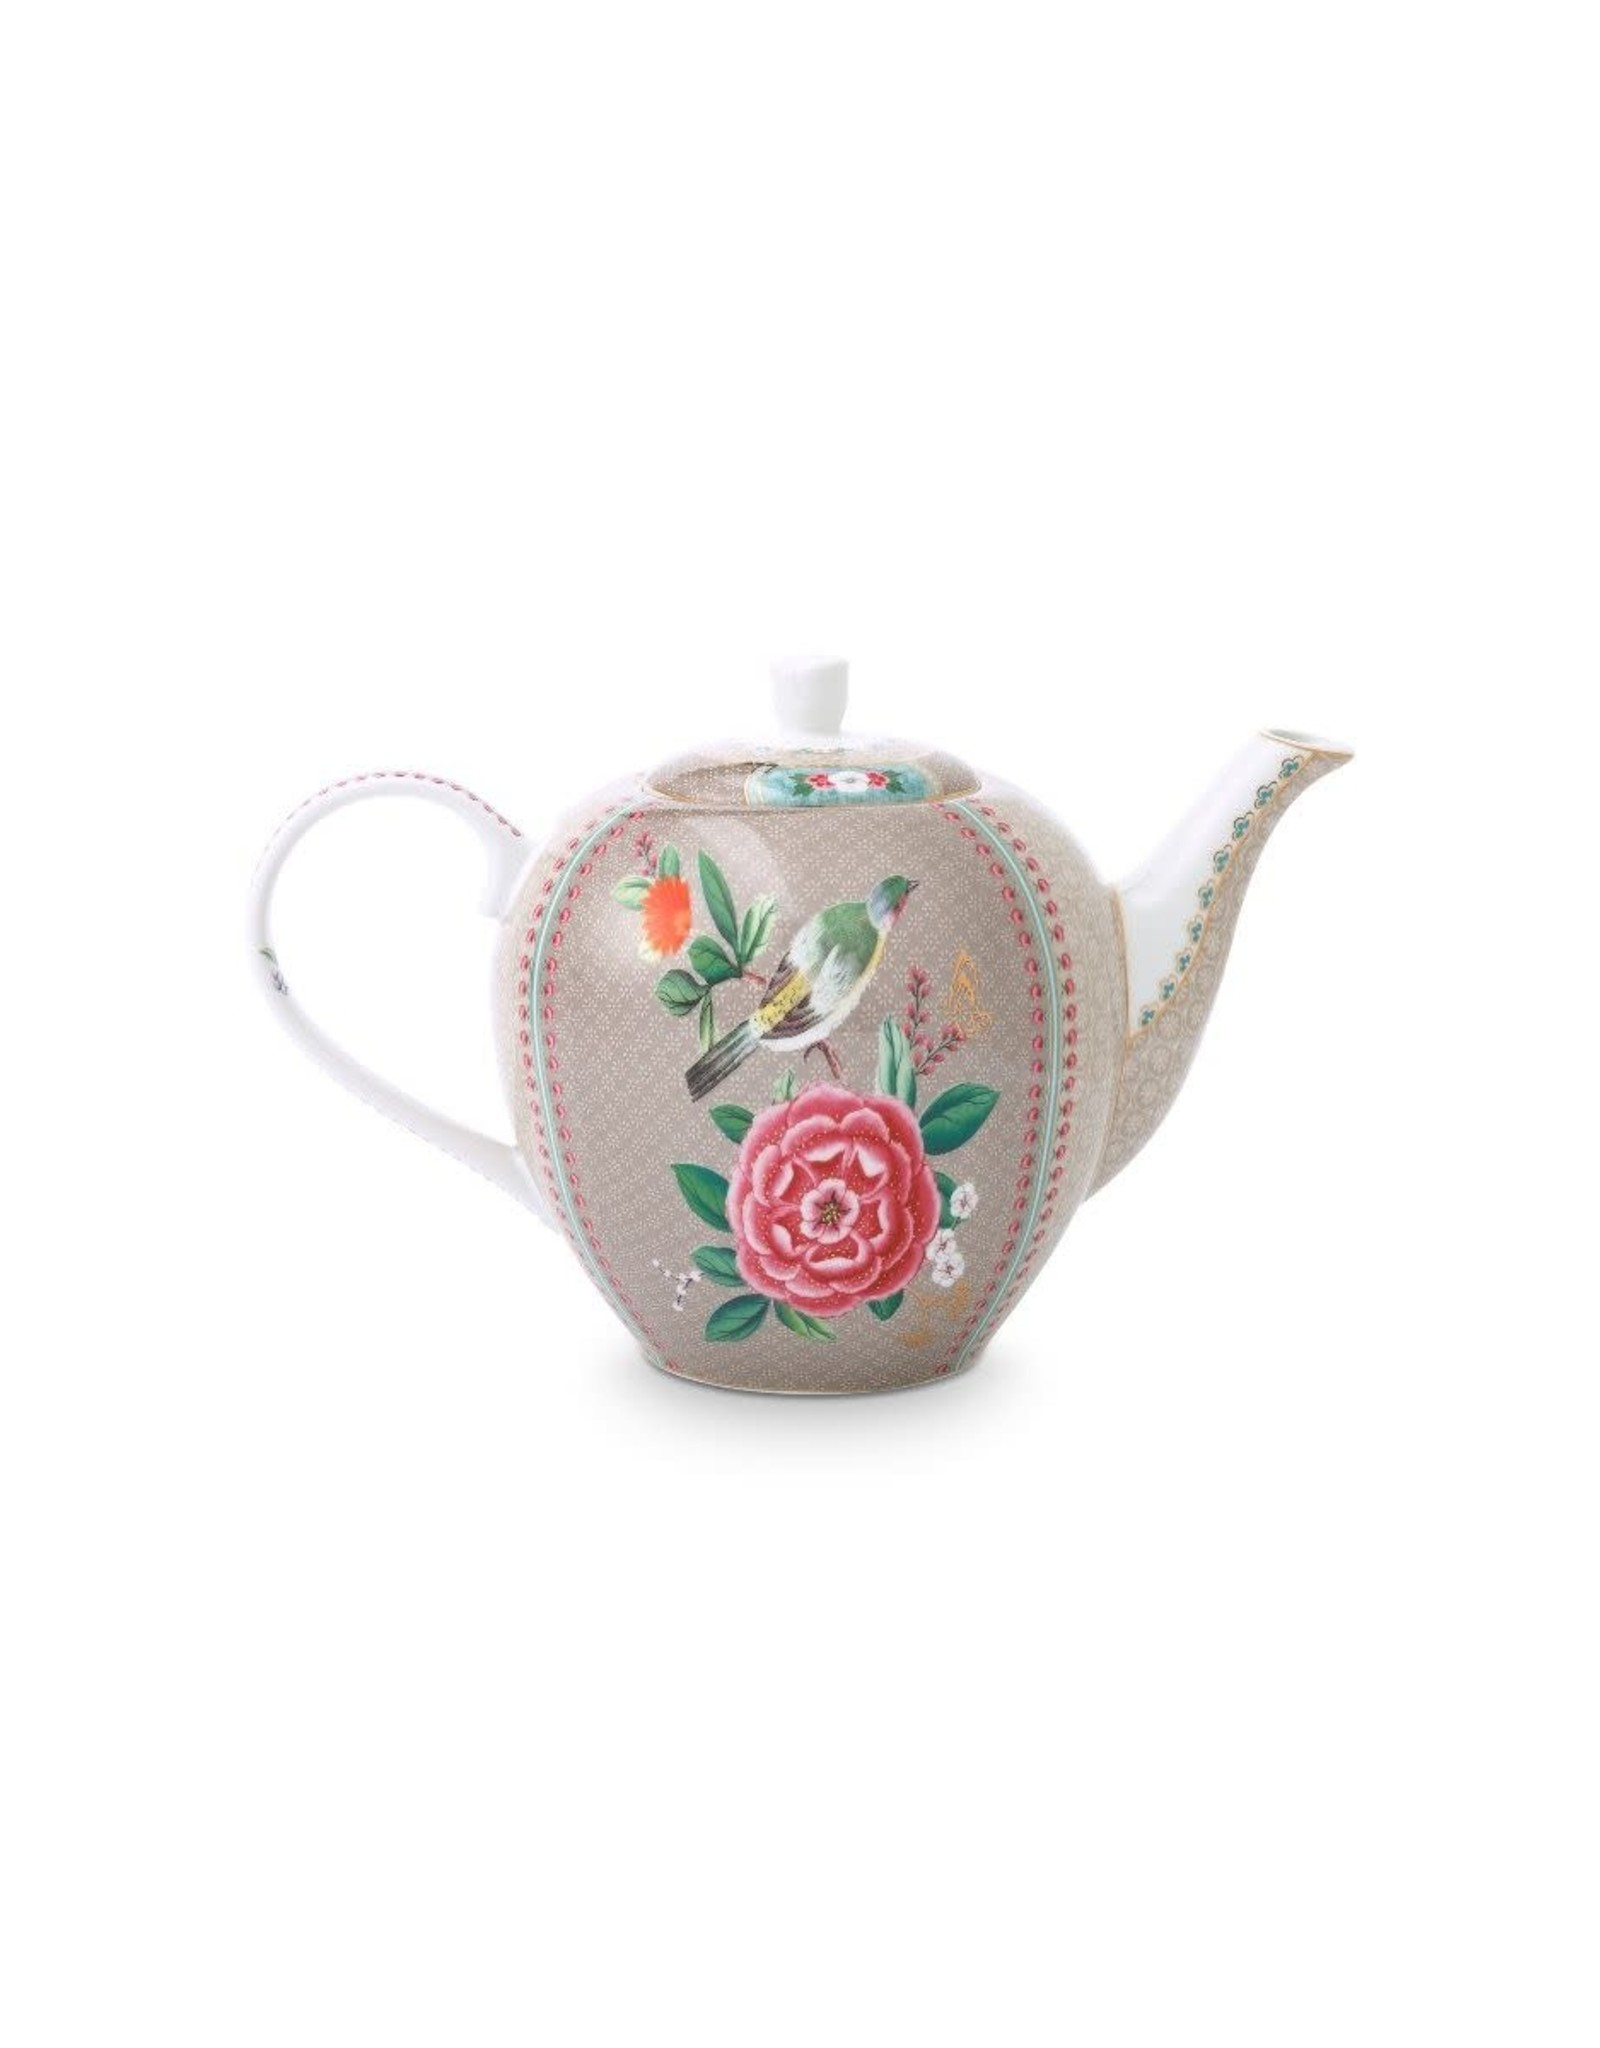 pip-studio Pip Studio. Tea Pot Large Blushing Birds Khaki 1.6ltr